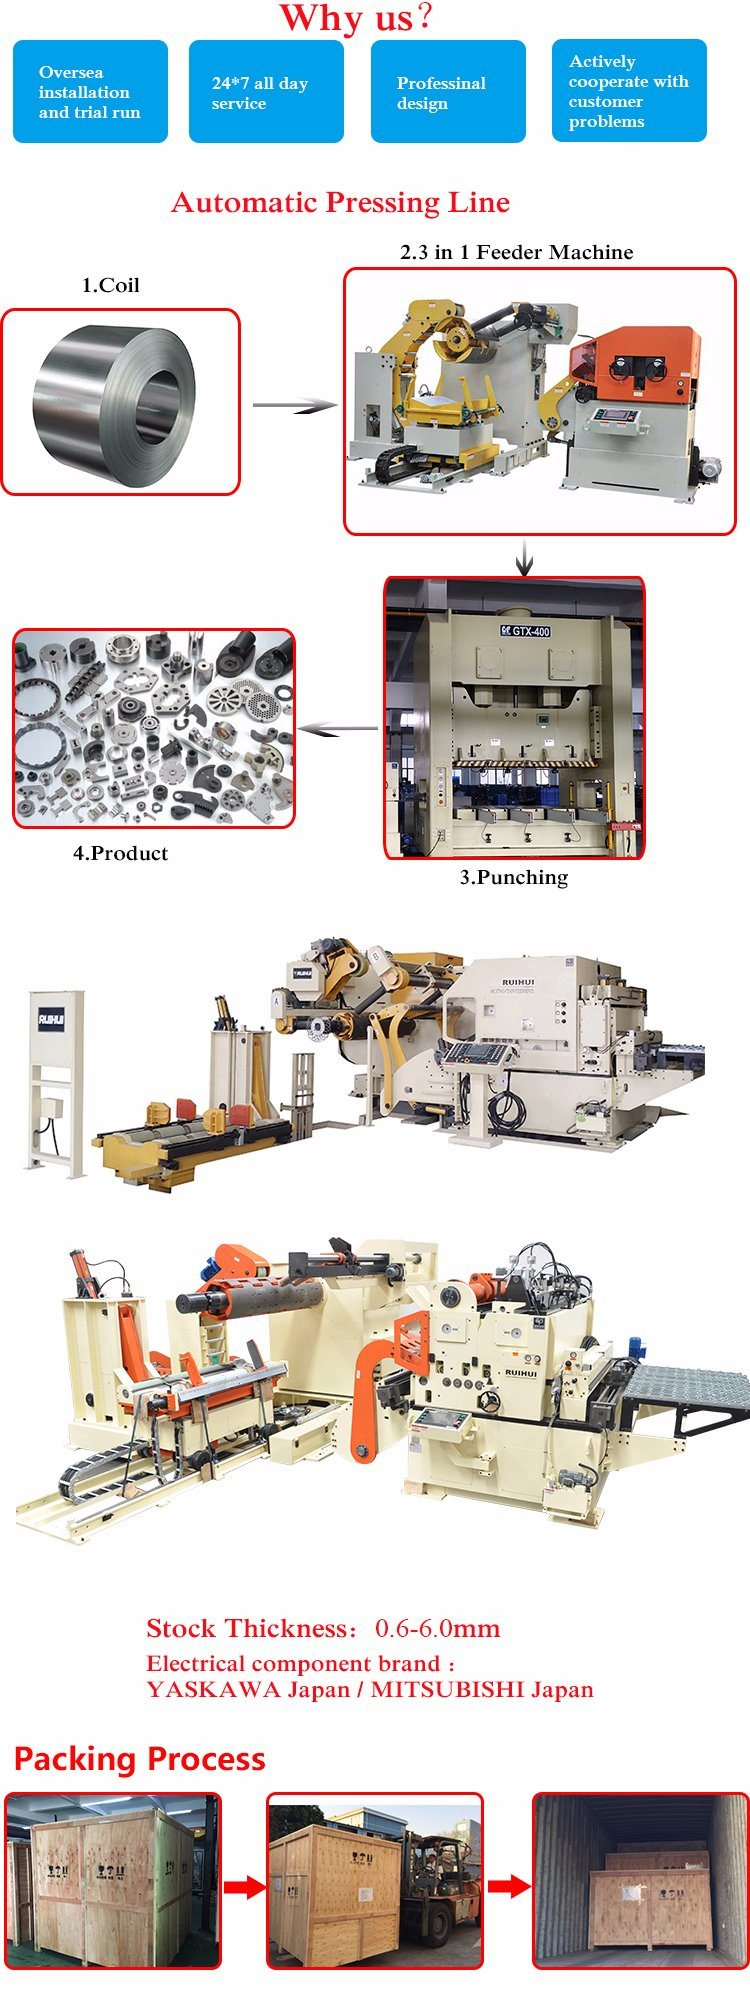 3-in-1 Feeder, Material Leveling and Feeding Equipment, Punching Automatic Feeding (MAC3-400)